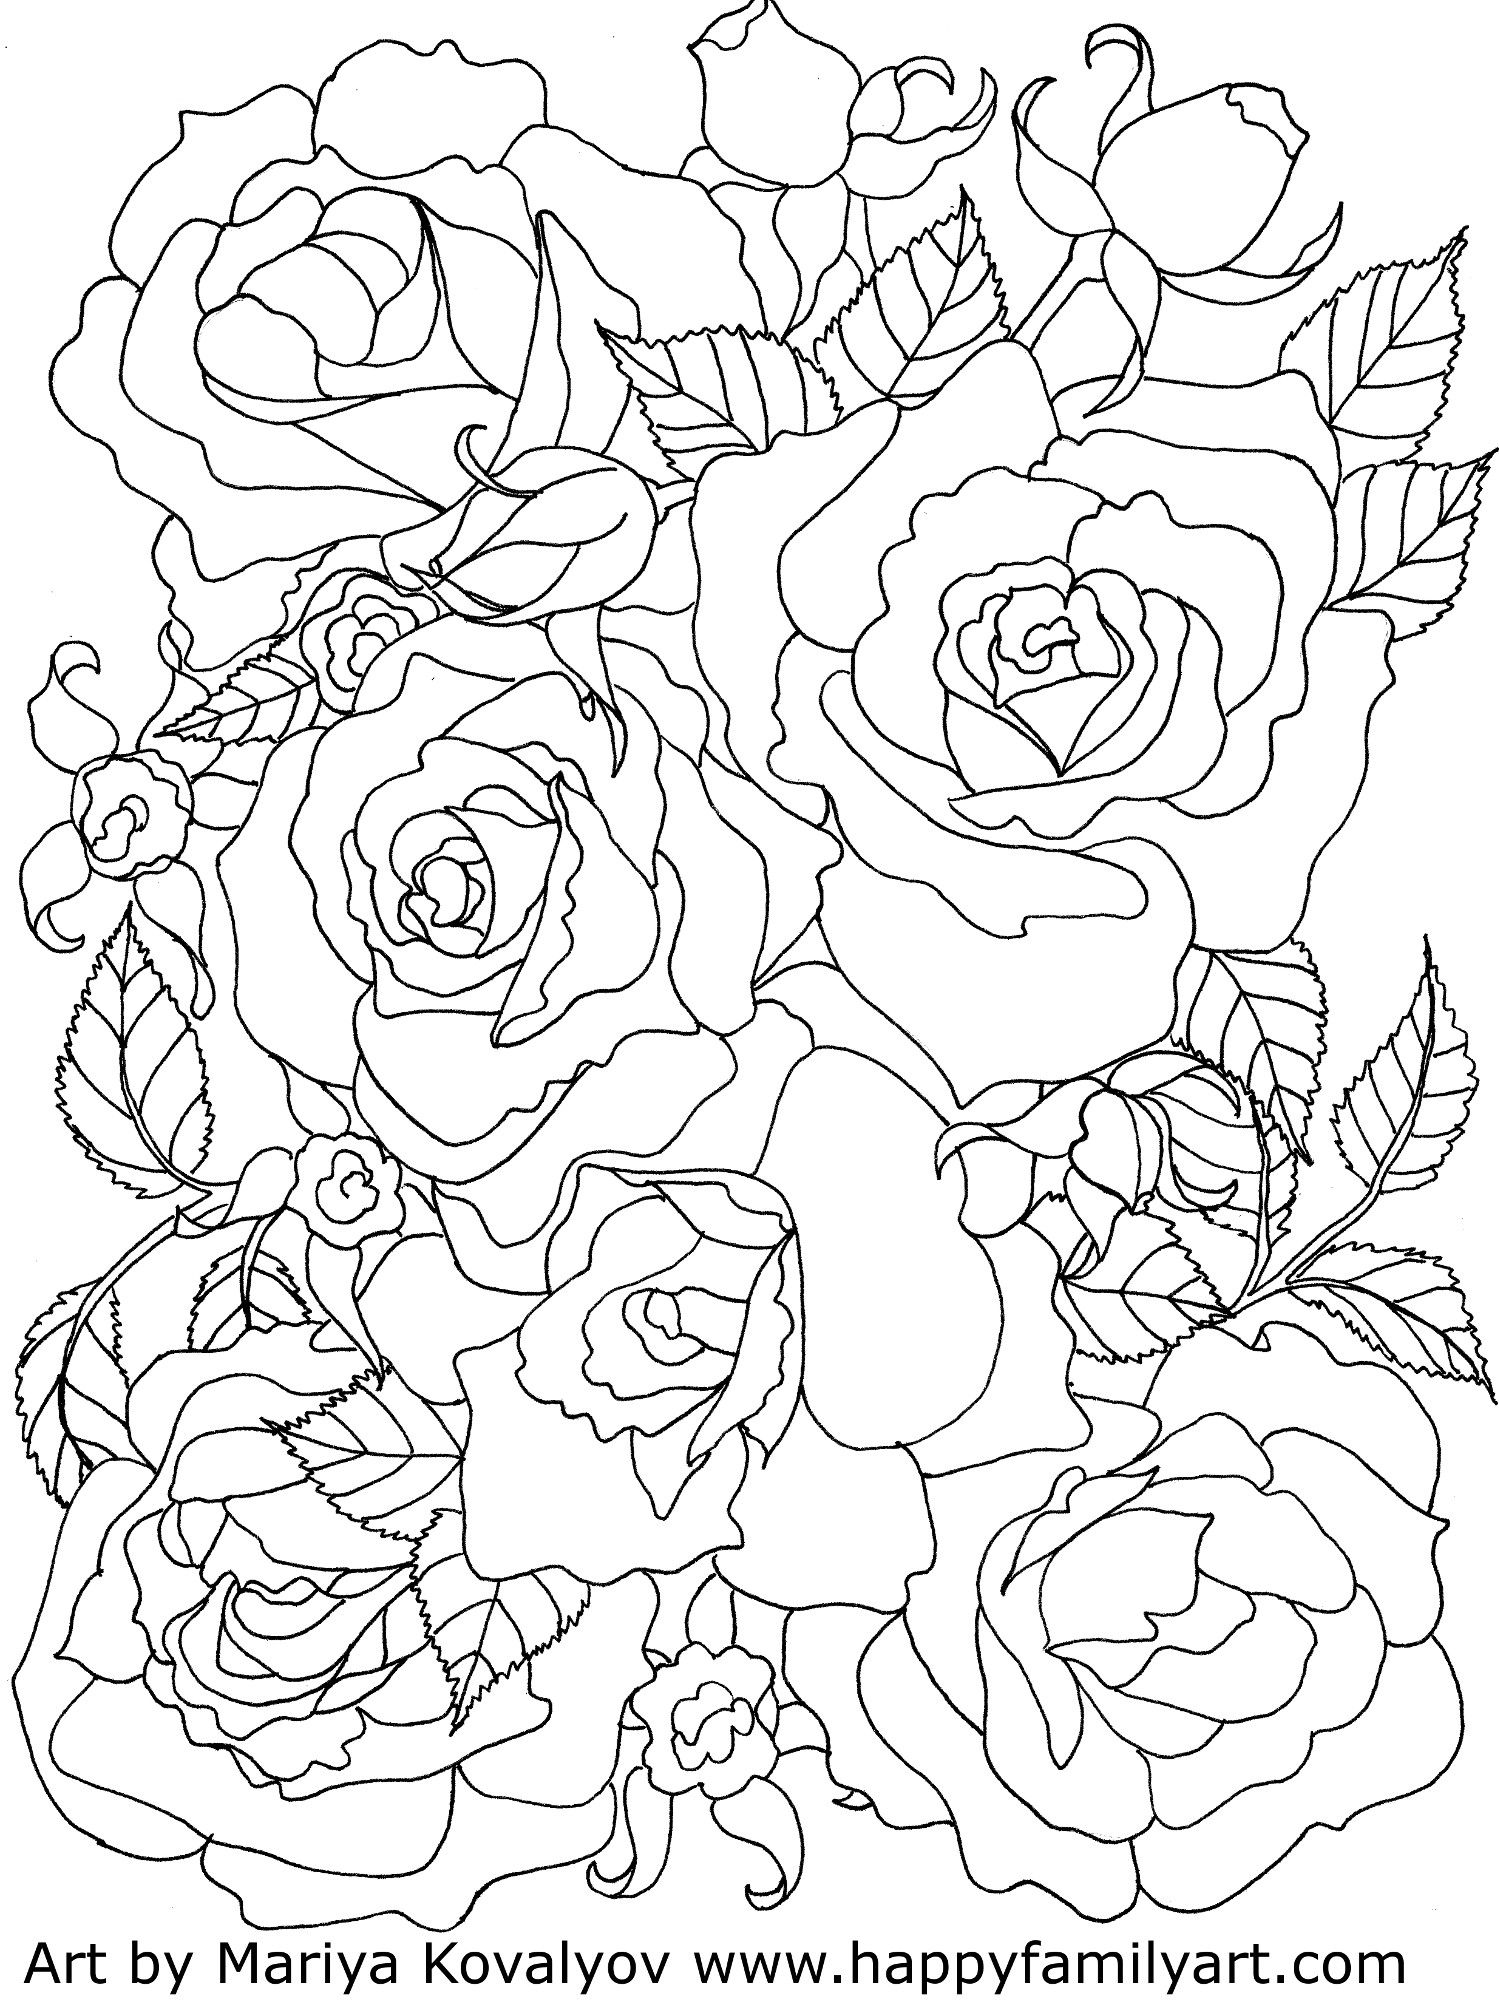 Beautiful Floral Coloring Pages For Kids And Adults Rose Coloring Pages Flower Coloring Pages Printable Flower Coloring Pages